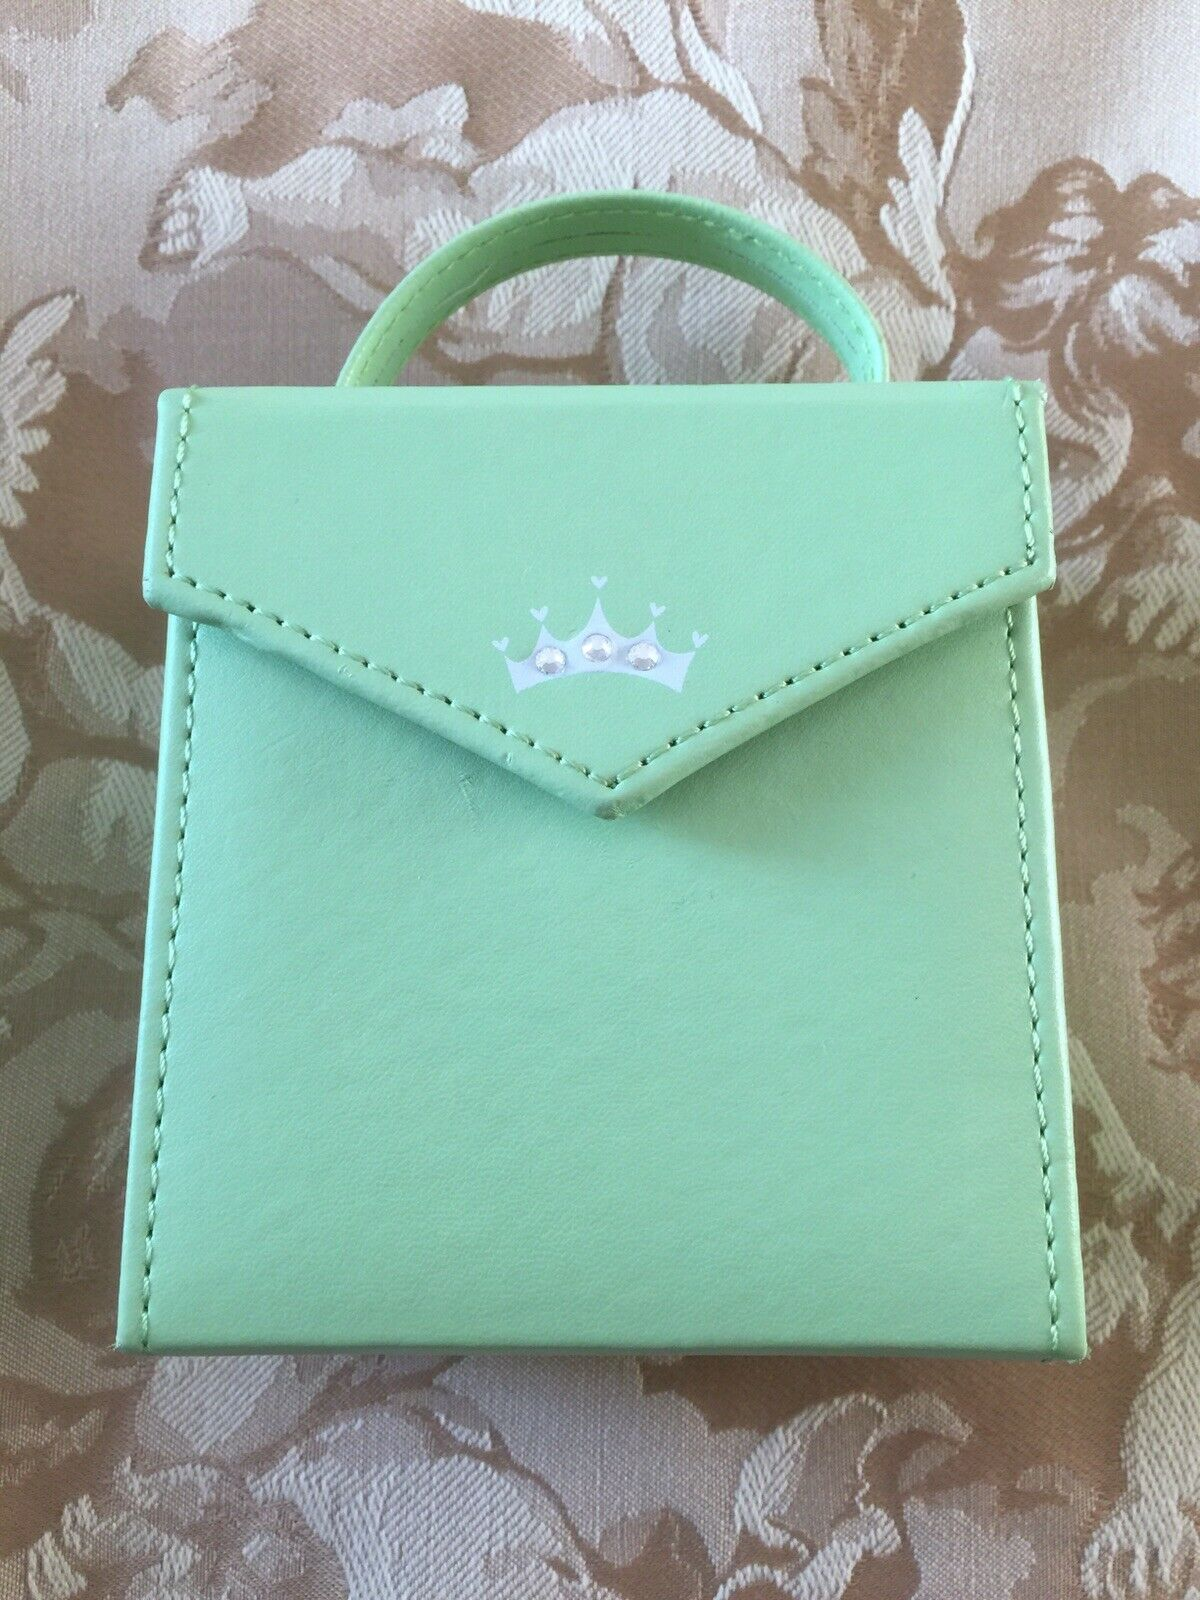 Hallmark Lime Green Top Handle Jewelry Travel Case Crown Design Front New Unused